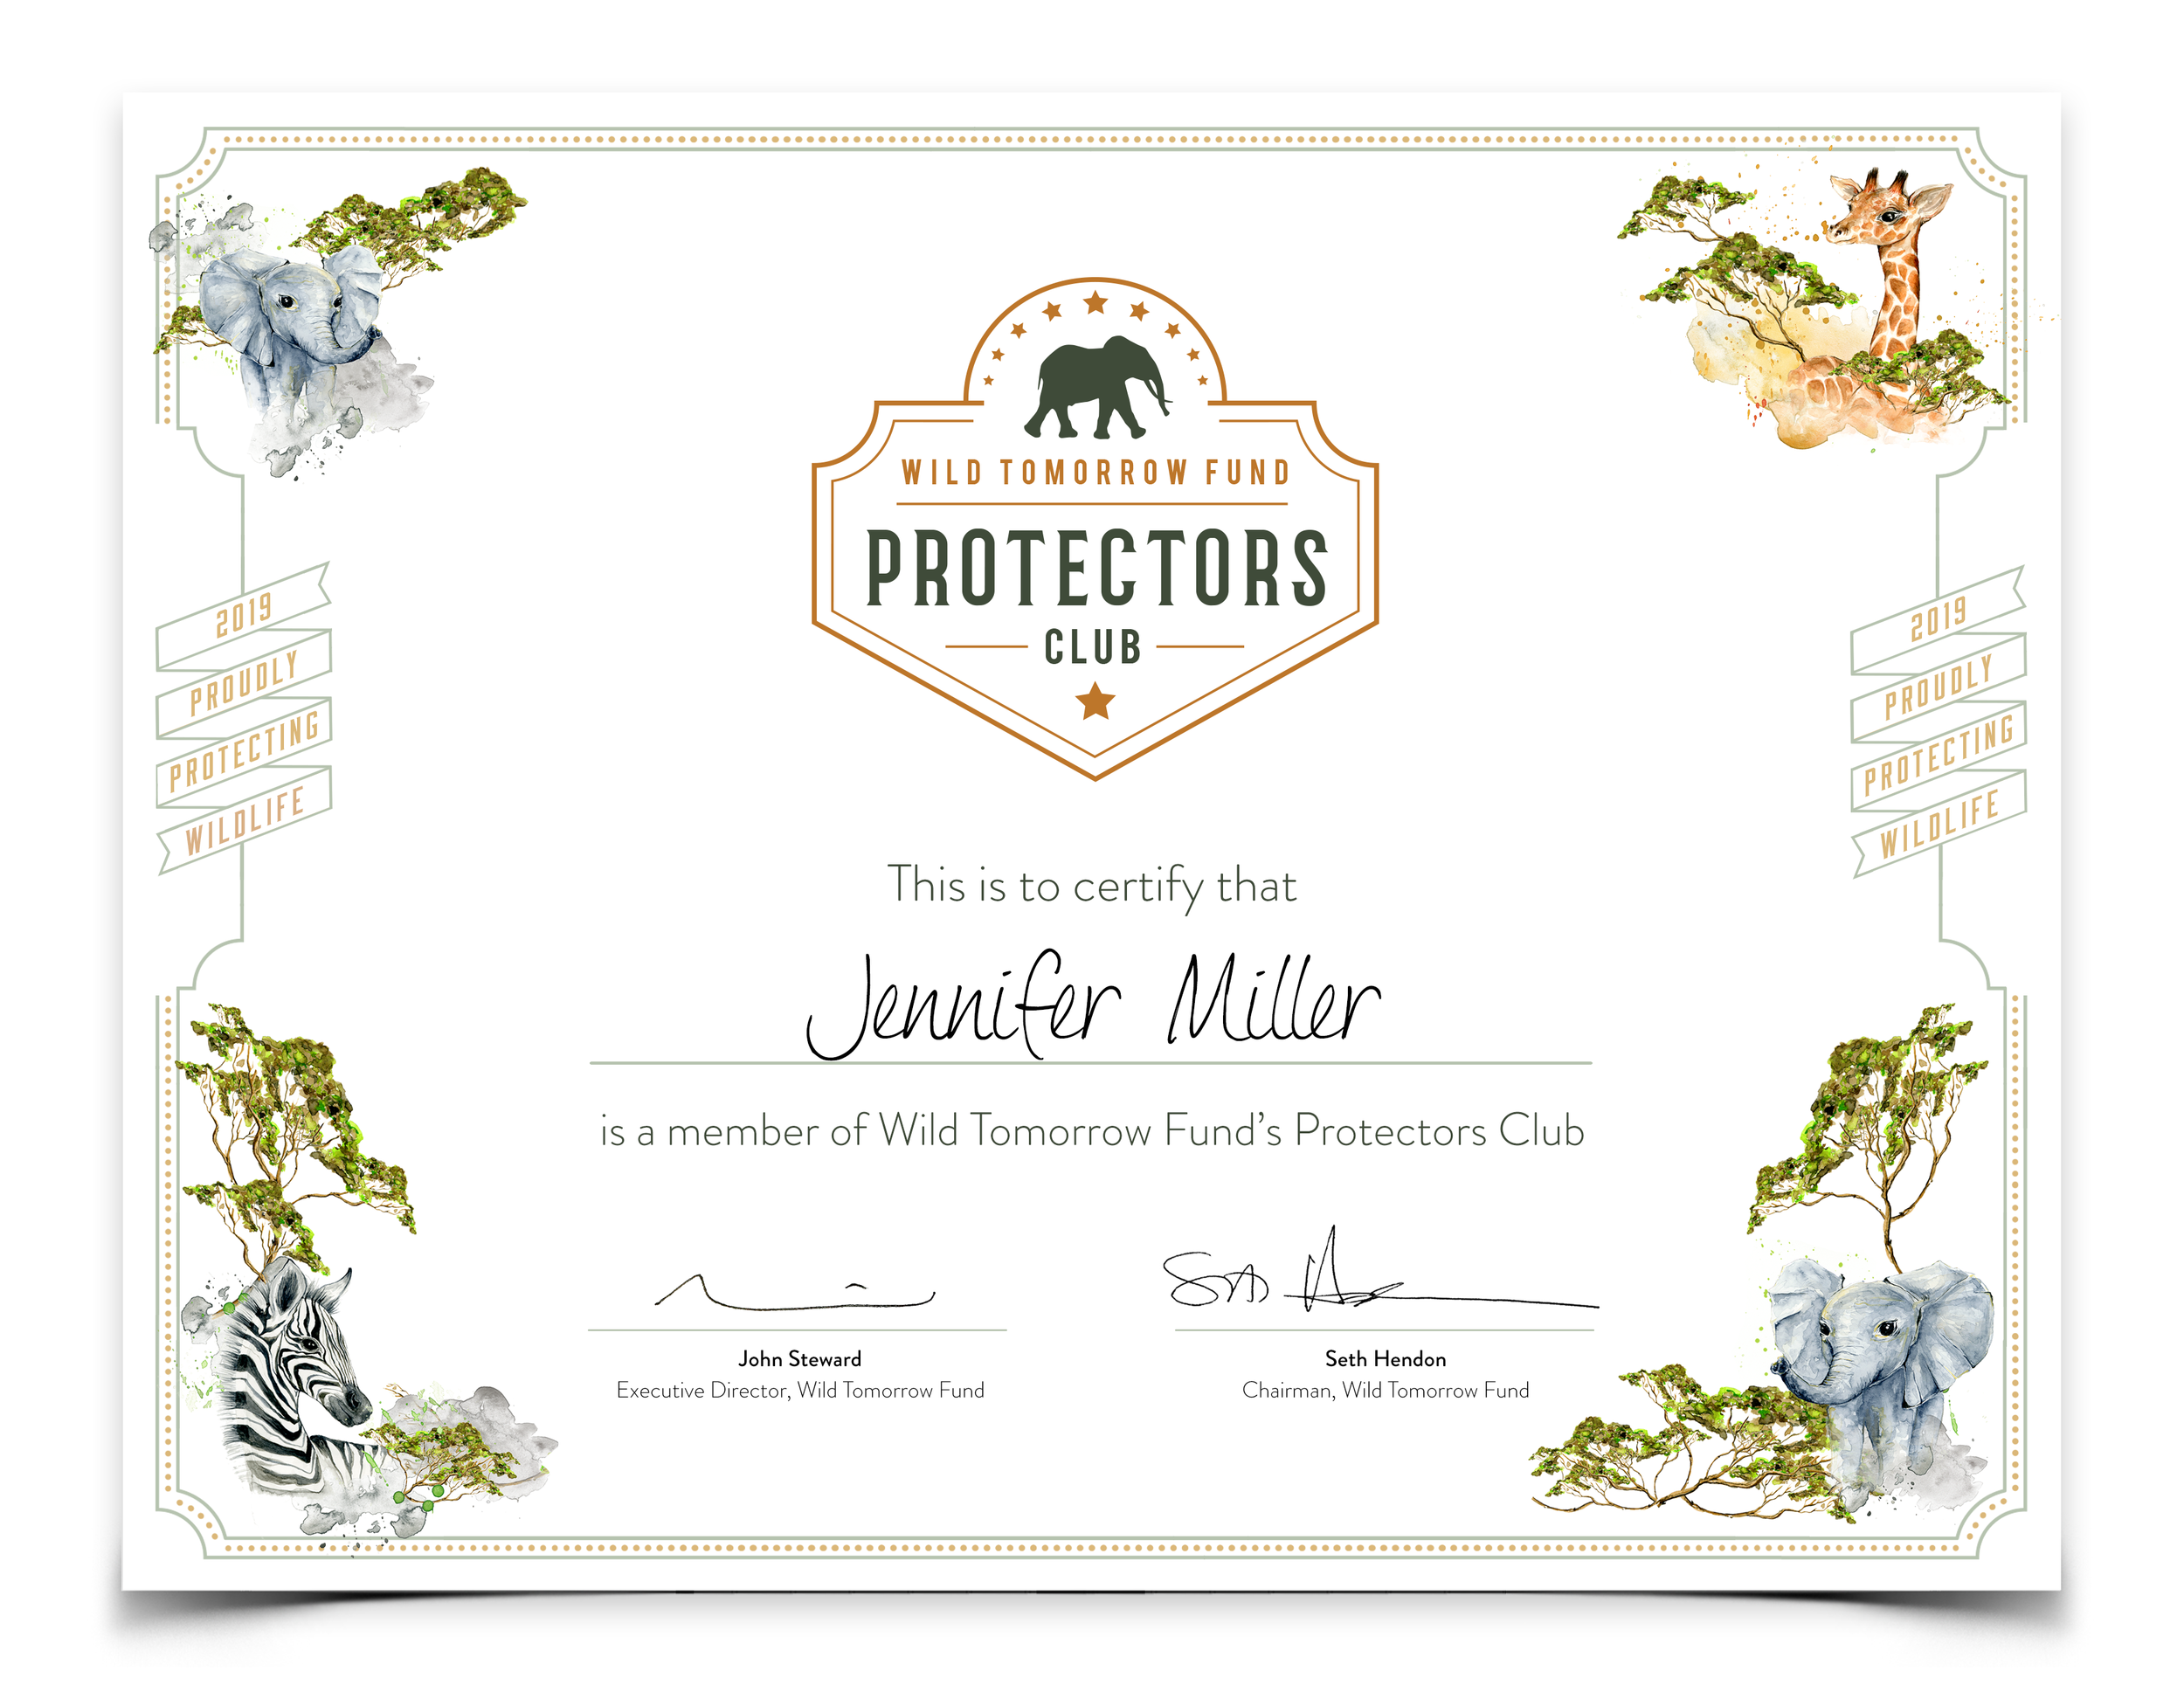 We'll send you a high-resolution digital, personalized Protectors Club membership certificate